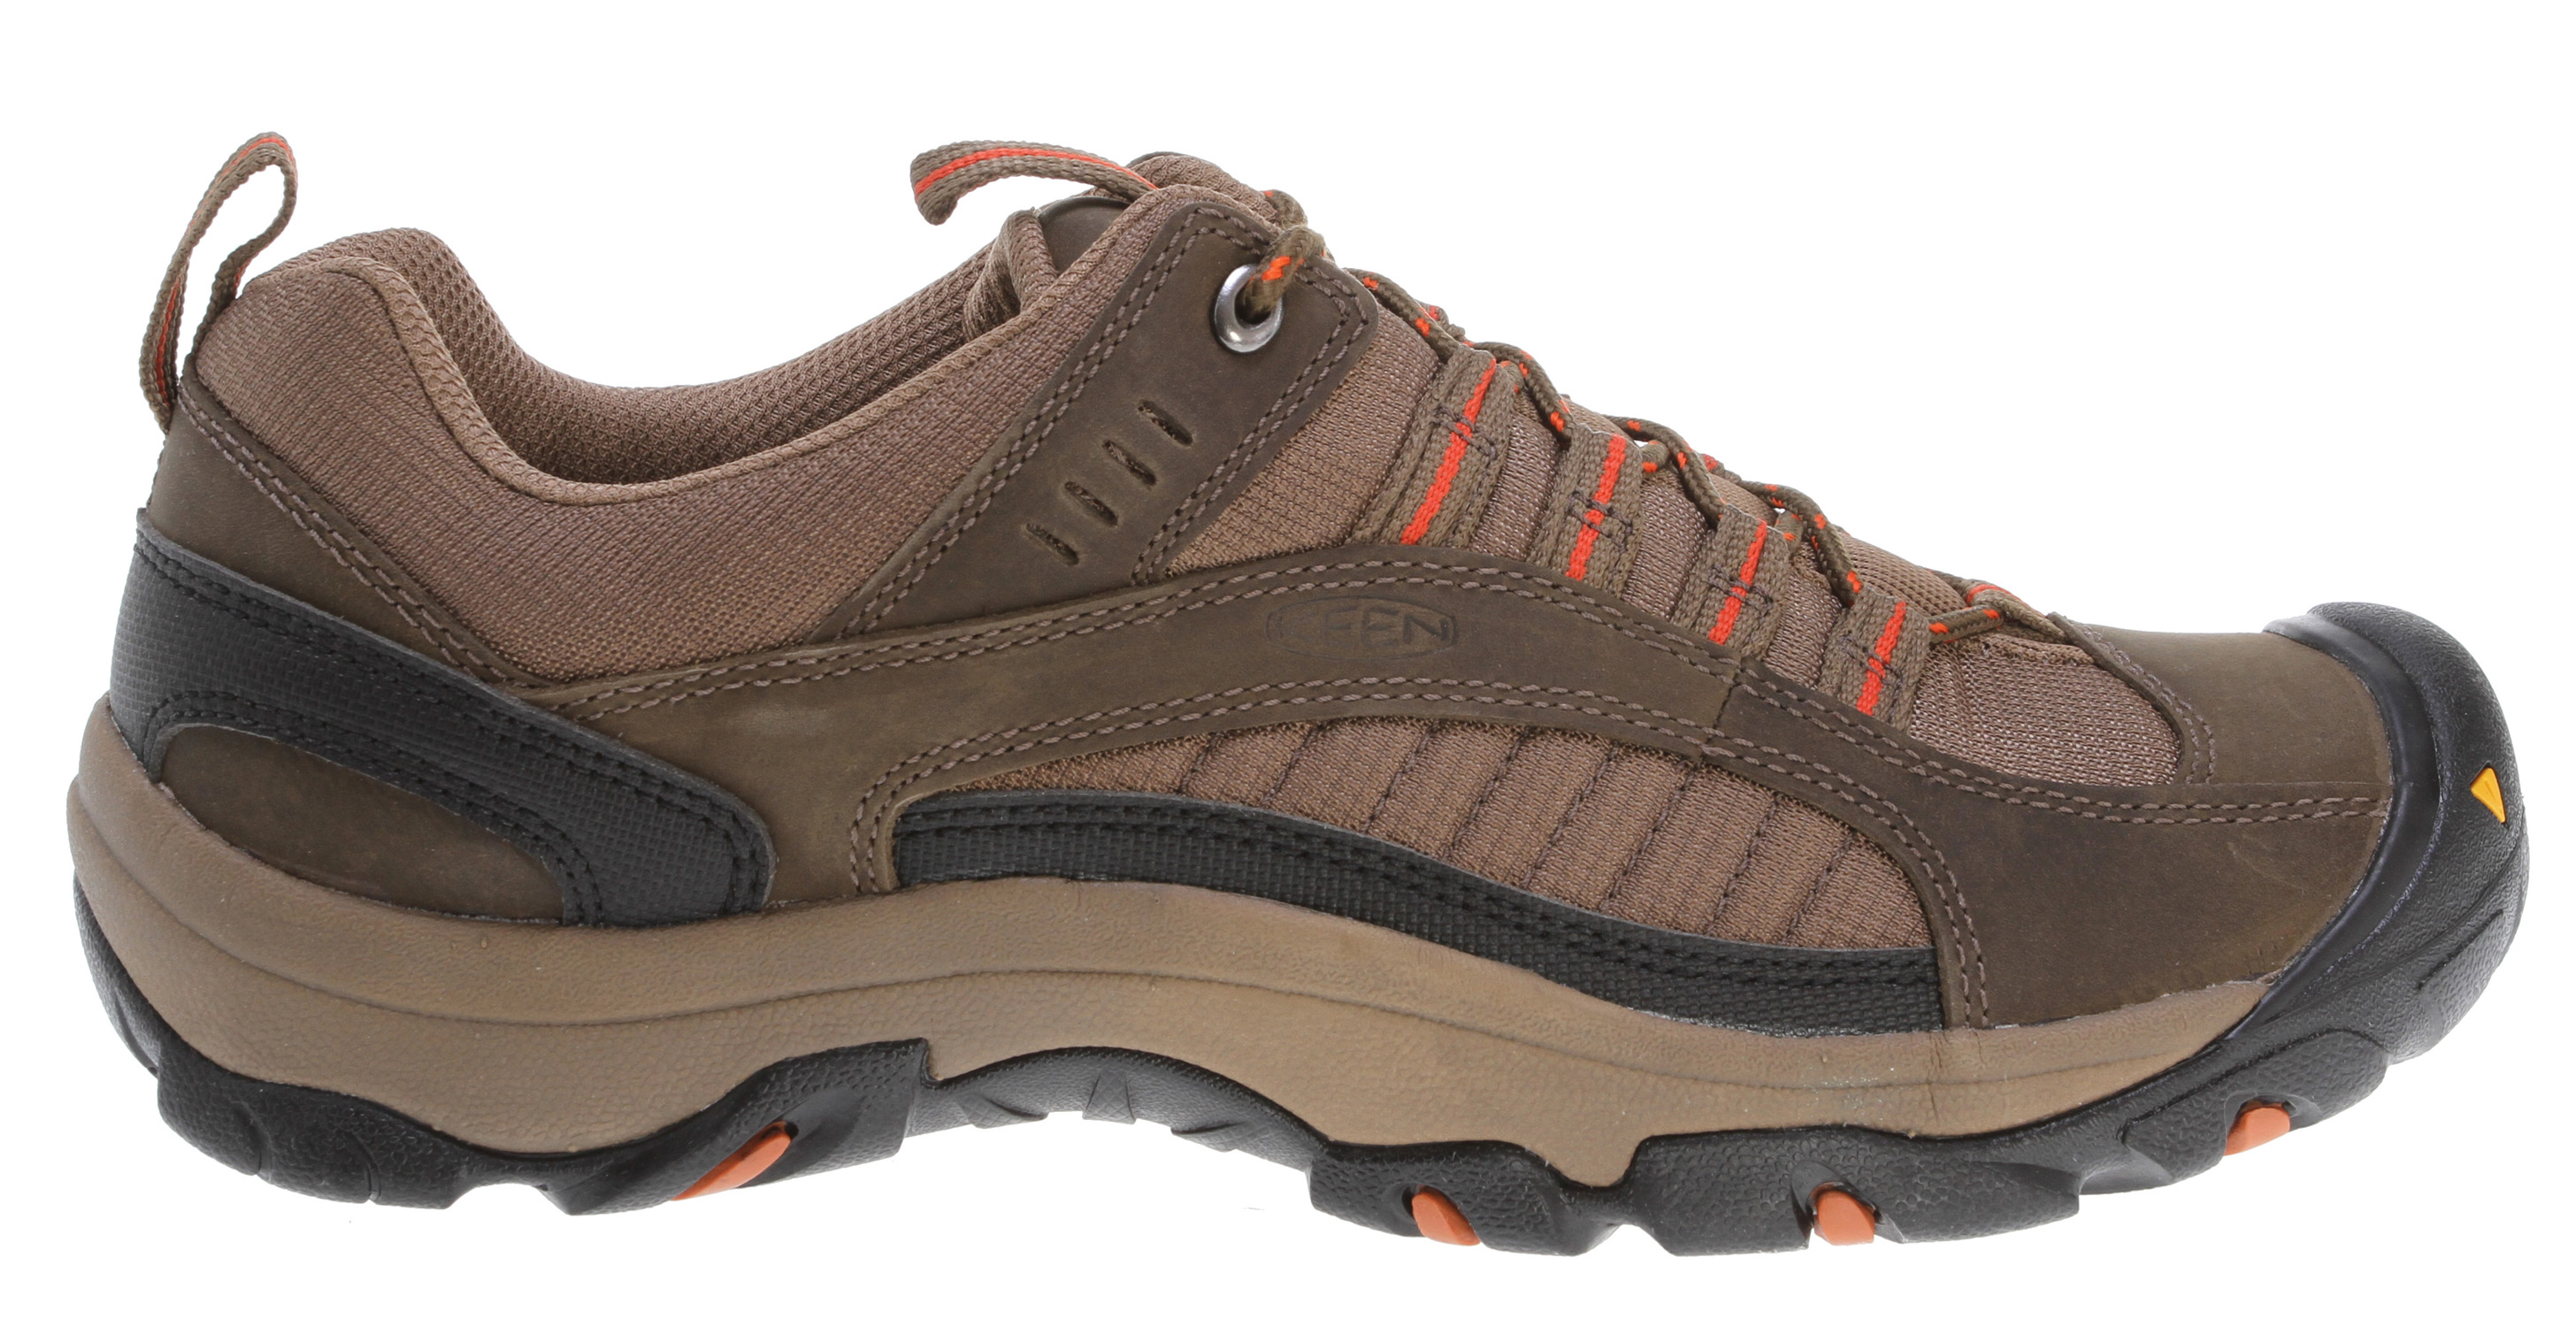 Camp and Hike From backyard to backcountry, the lightweight, rugged and comfortable Zion is an all-around favorite. Combining clean lines with an athletic fit, the Zion's sturdy construction and waterproof leathers mean you're ready for whatever adventures the weekend brings.Key Features of the Keen Zion Hiking Shoes: 4mm multi-directional lugs Compression molded EVA midsole Non-marking rubber outsole Nubuck leather and breathable mesh upper Removable metatomical dual density EVA footbed TPU stability shank Weight: 19.40 oz/550.97 g Activities: Hiking Type: Shoes: Light Rain not for puddles Fit Tip: We find this style runs about a 1/2 size small Lining: Moisture wicking textile Upper: Leather and textile Rubber: Non-marking rubber outsole - $55.95